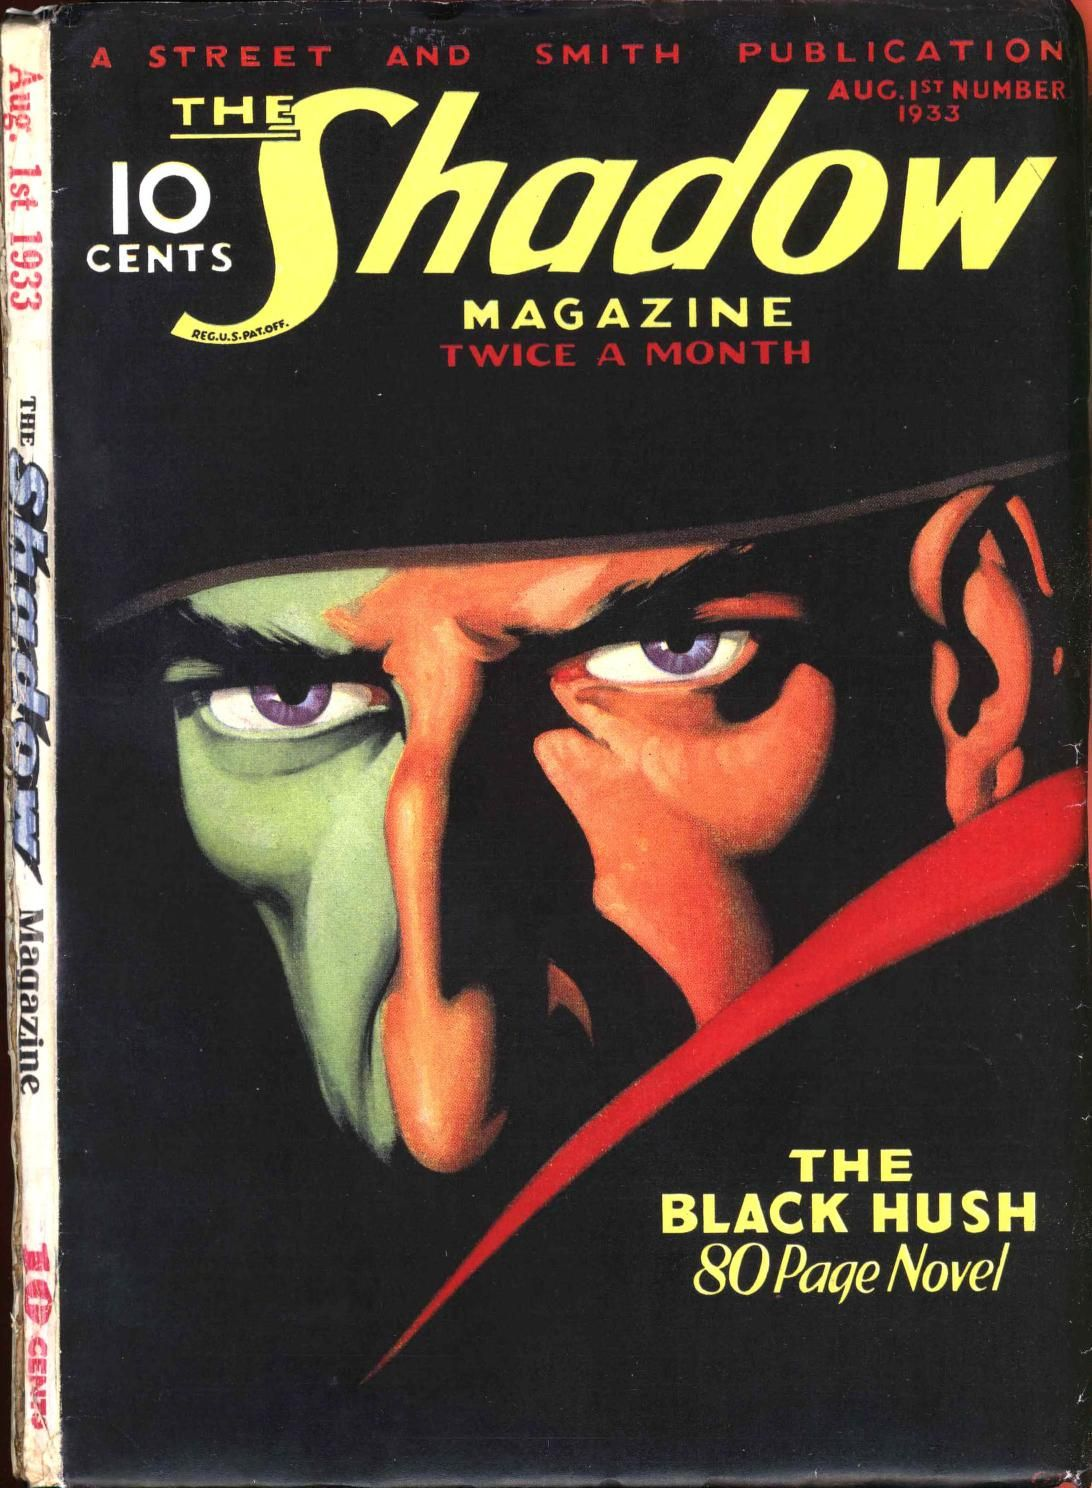 Download The Shadow magazine, from 1933 from archive org, in